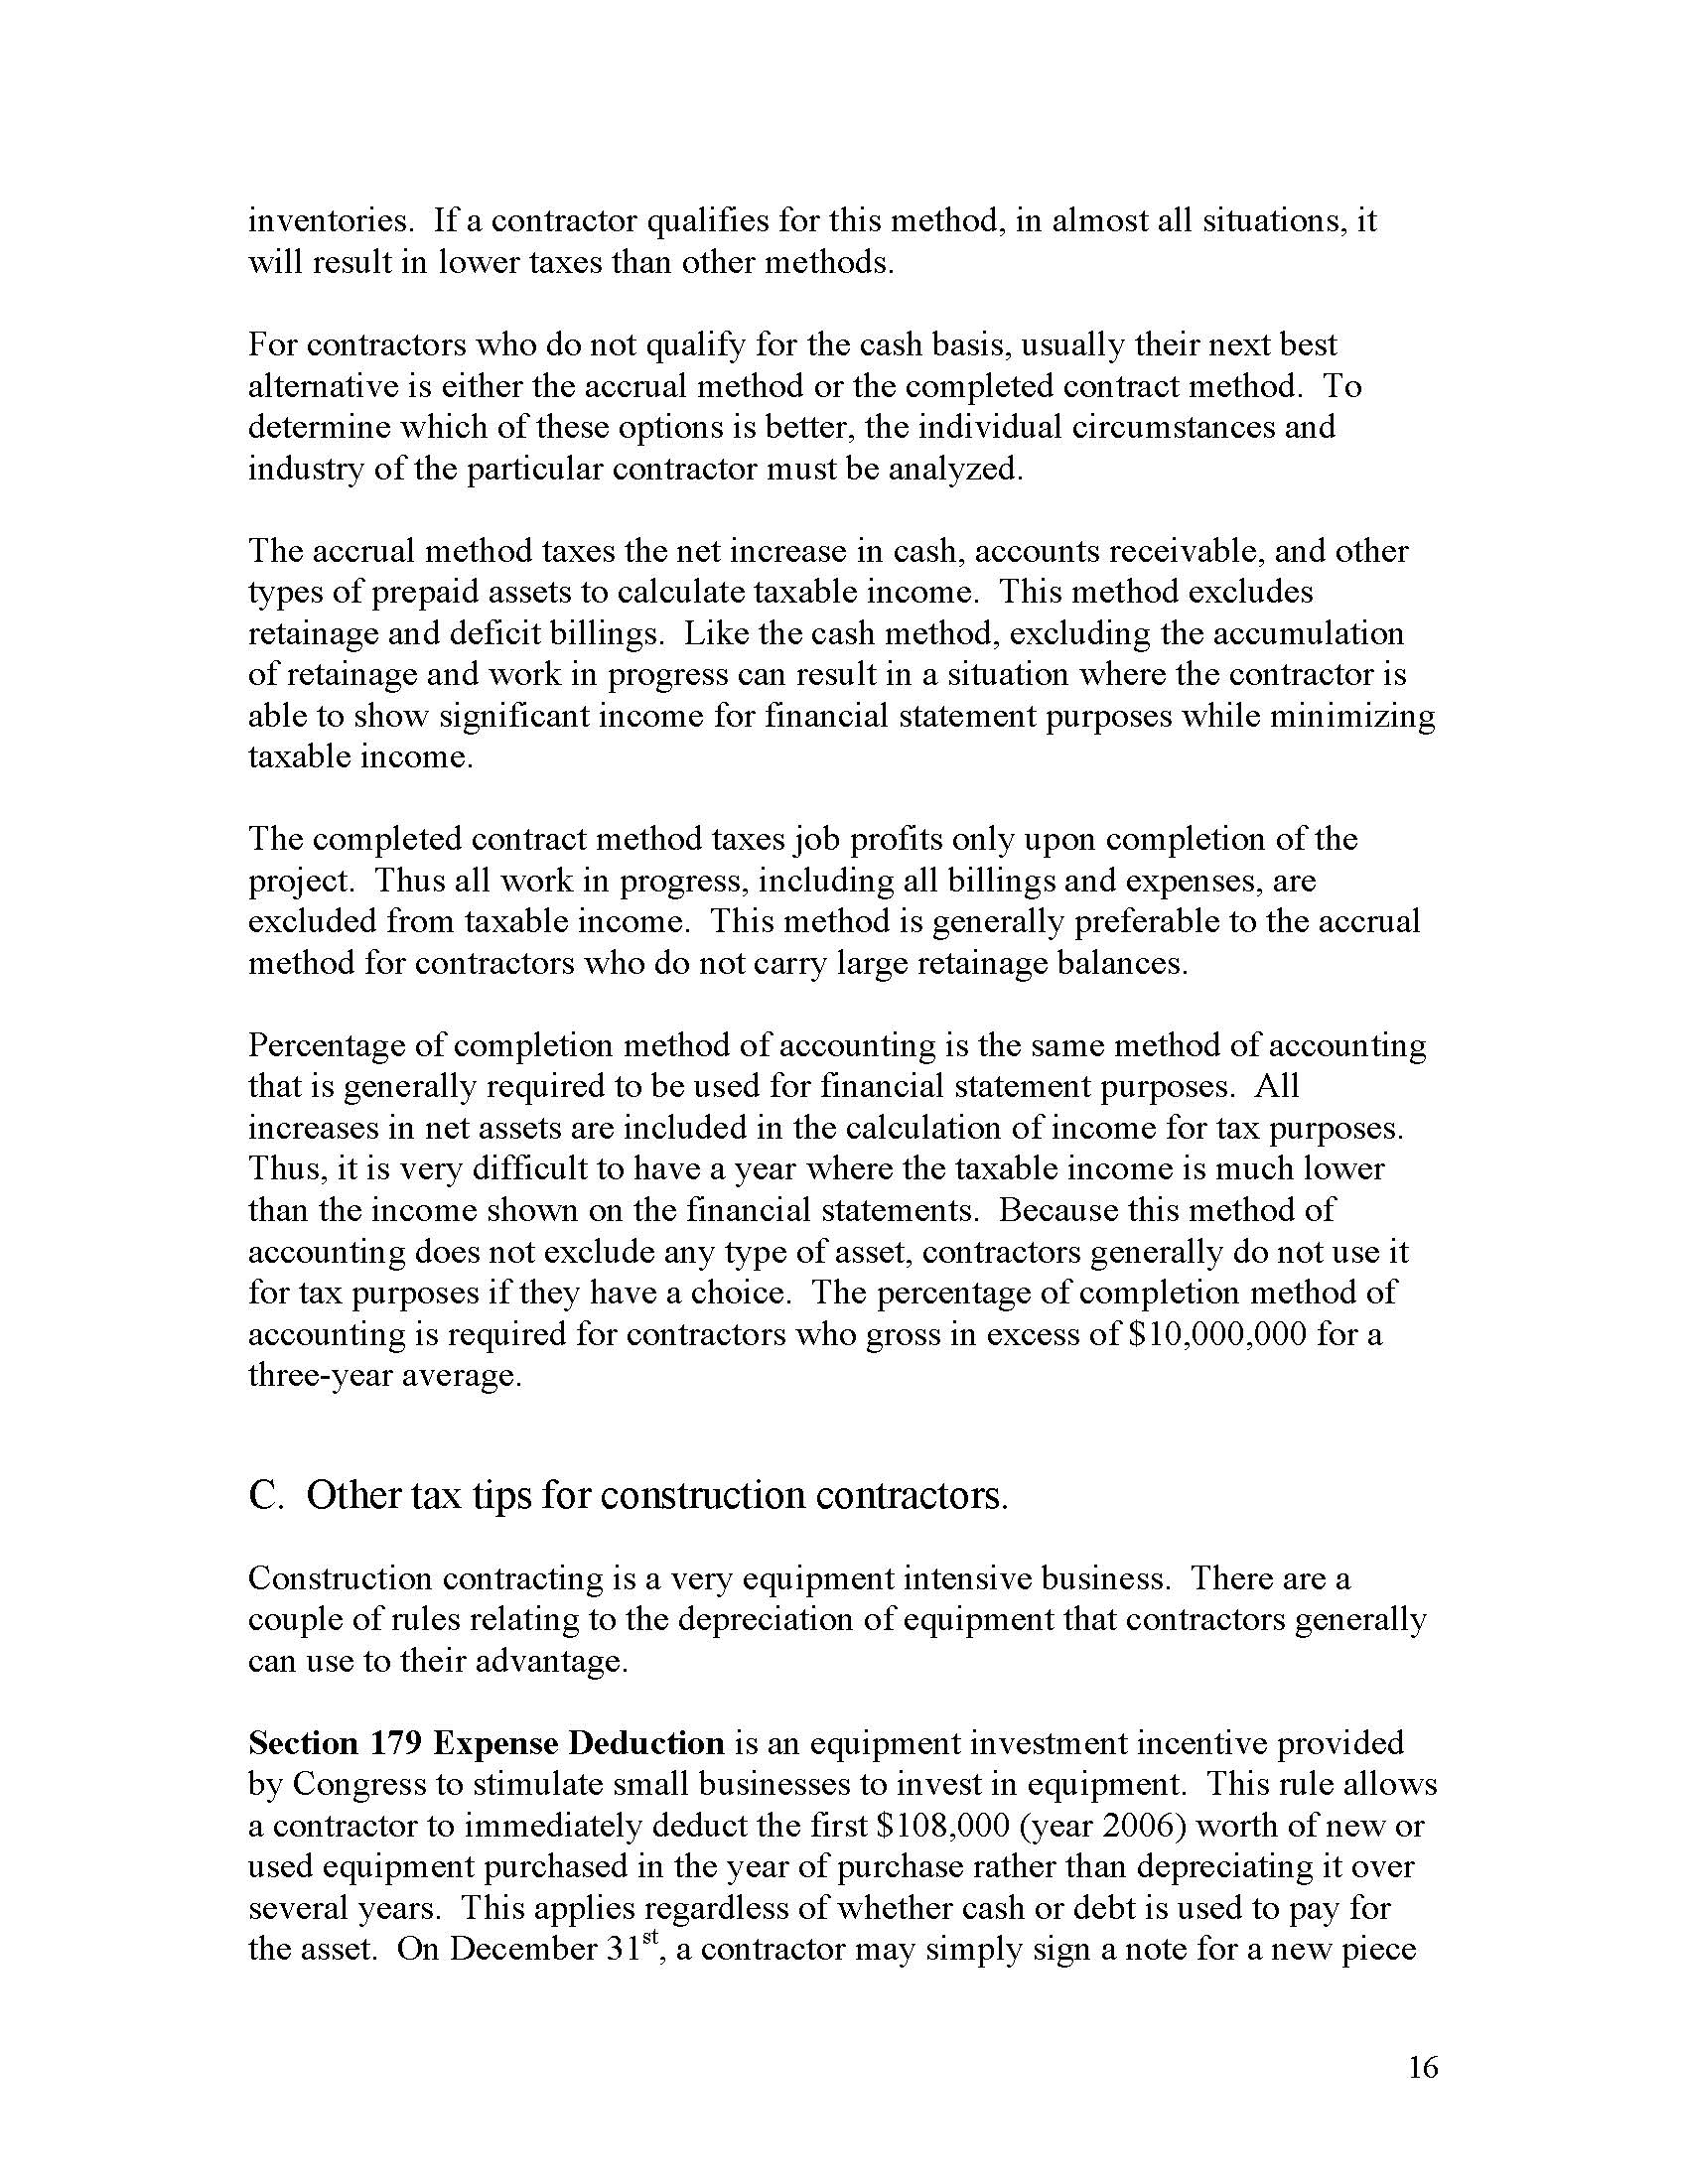 construction-business-structure-how-to-protect-your-equity_Page_16.jpg